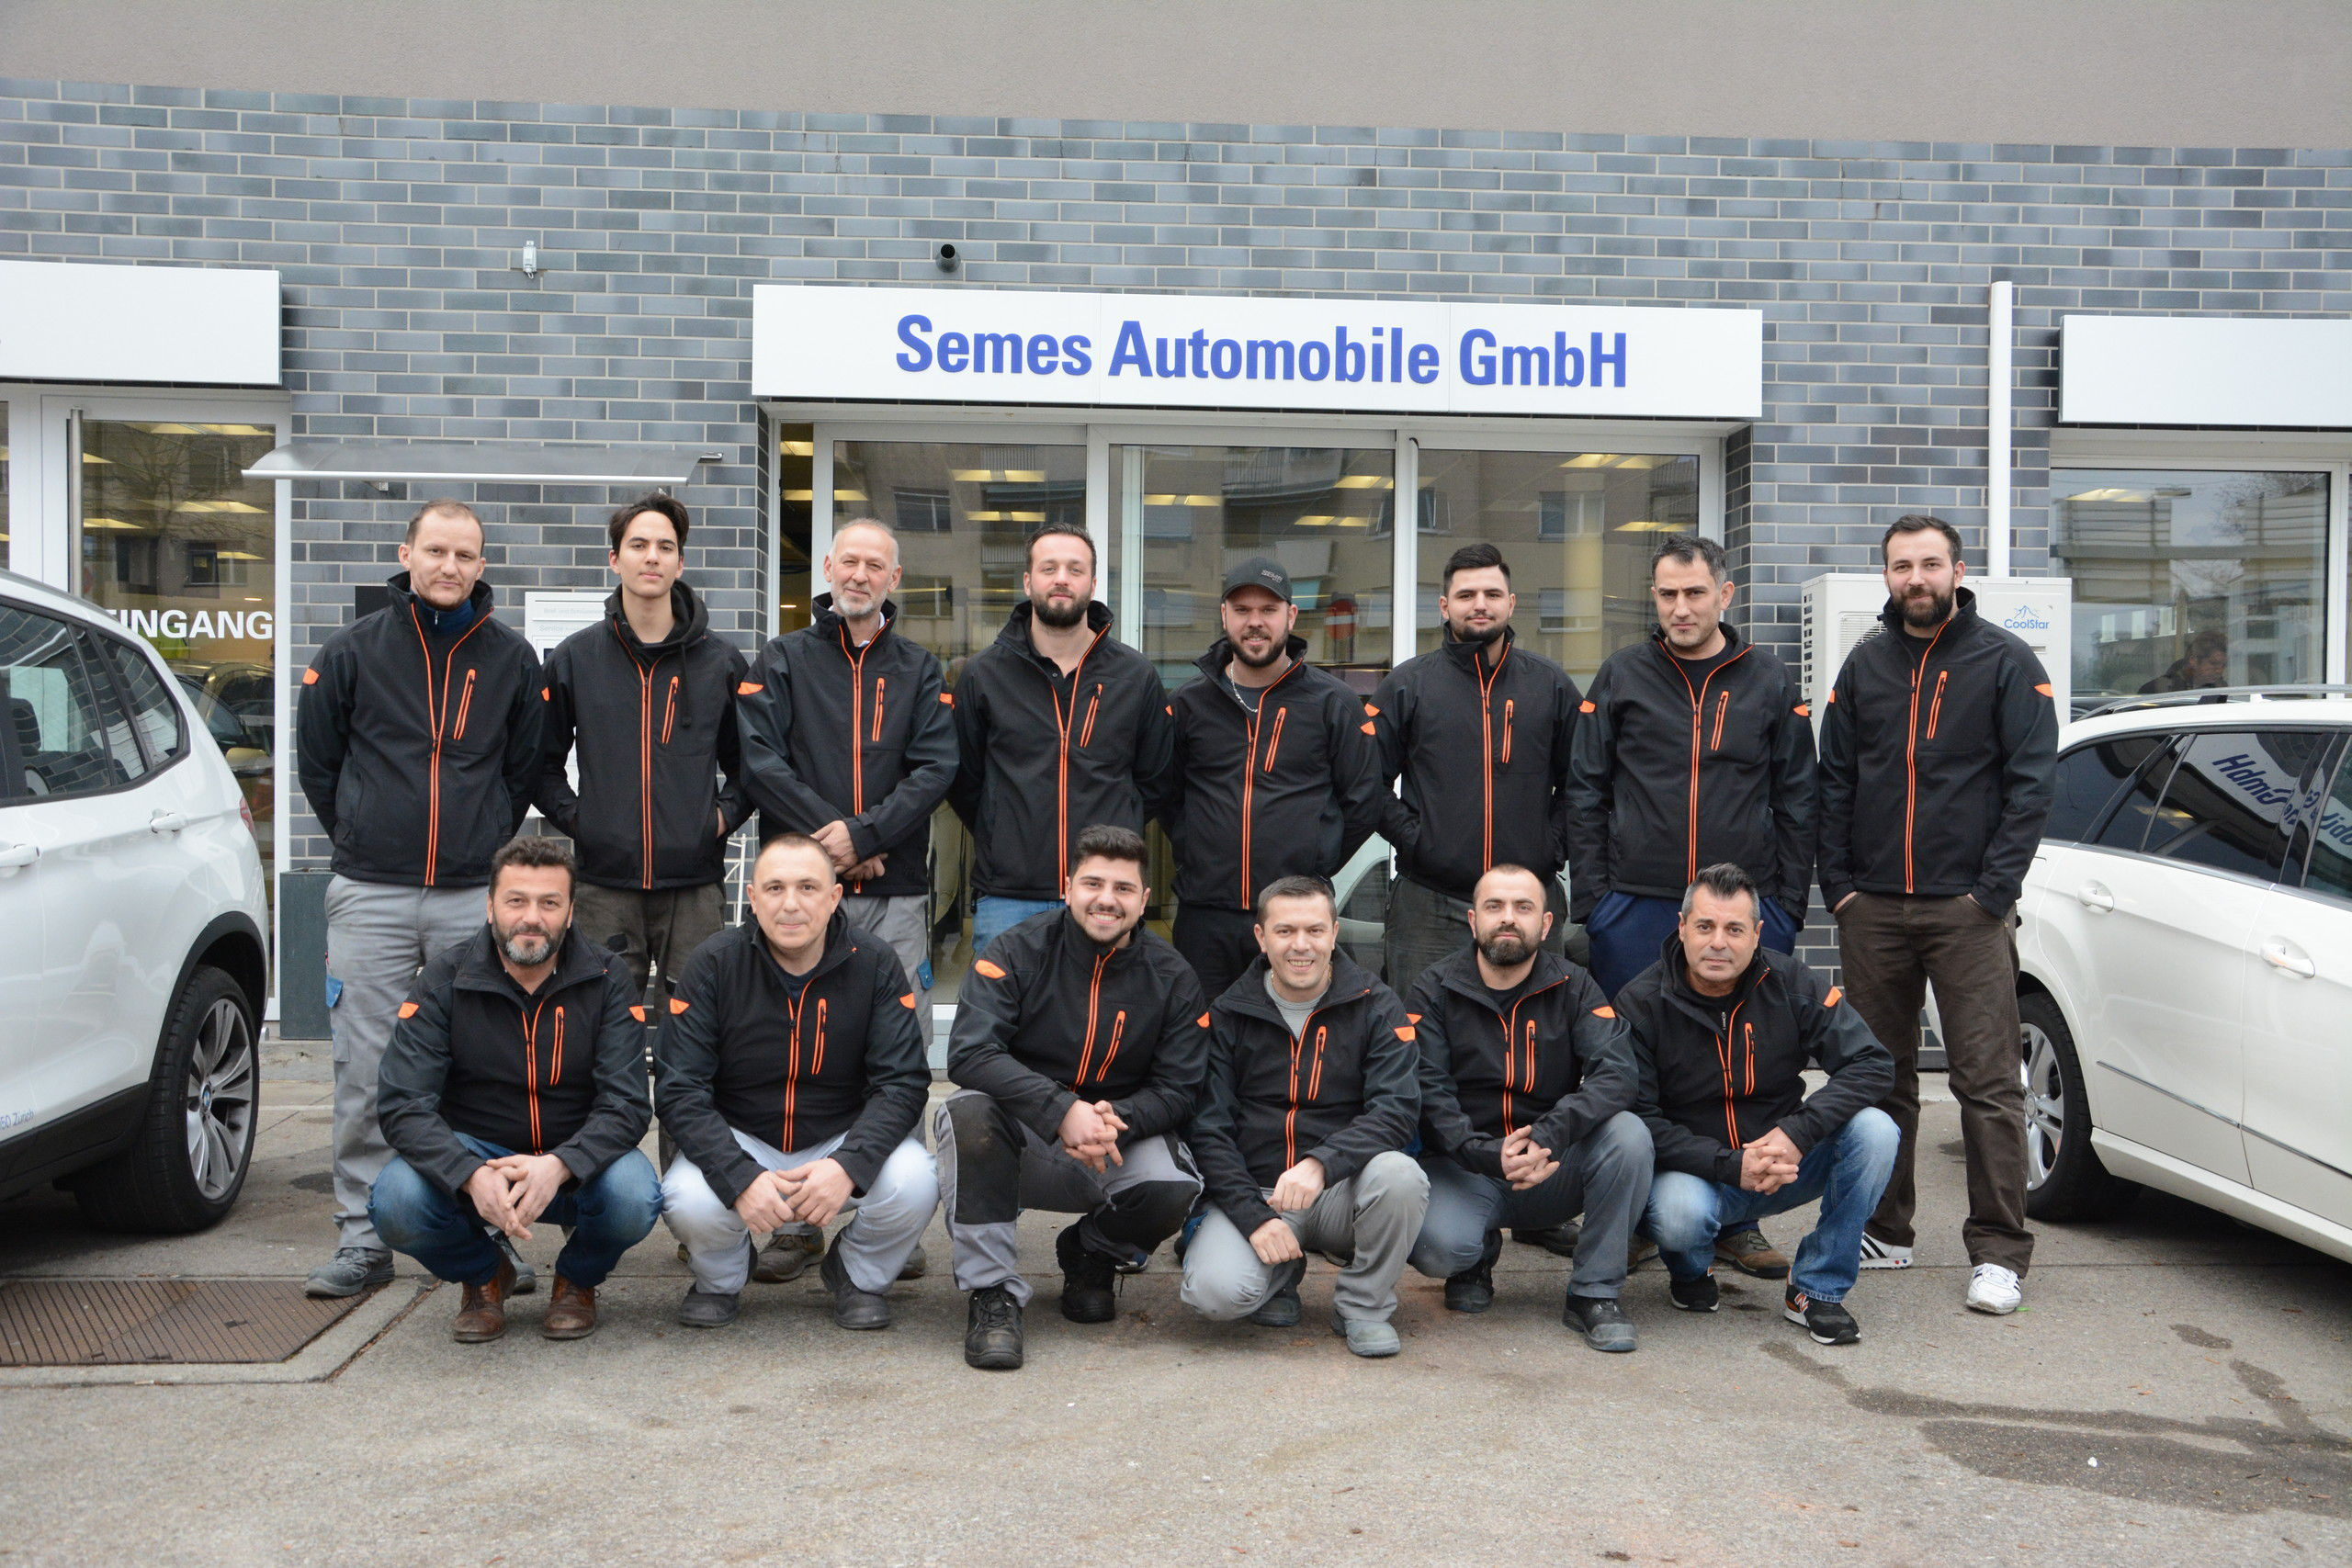 Semes Automobile GmbH